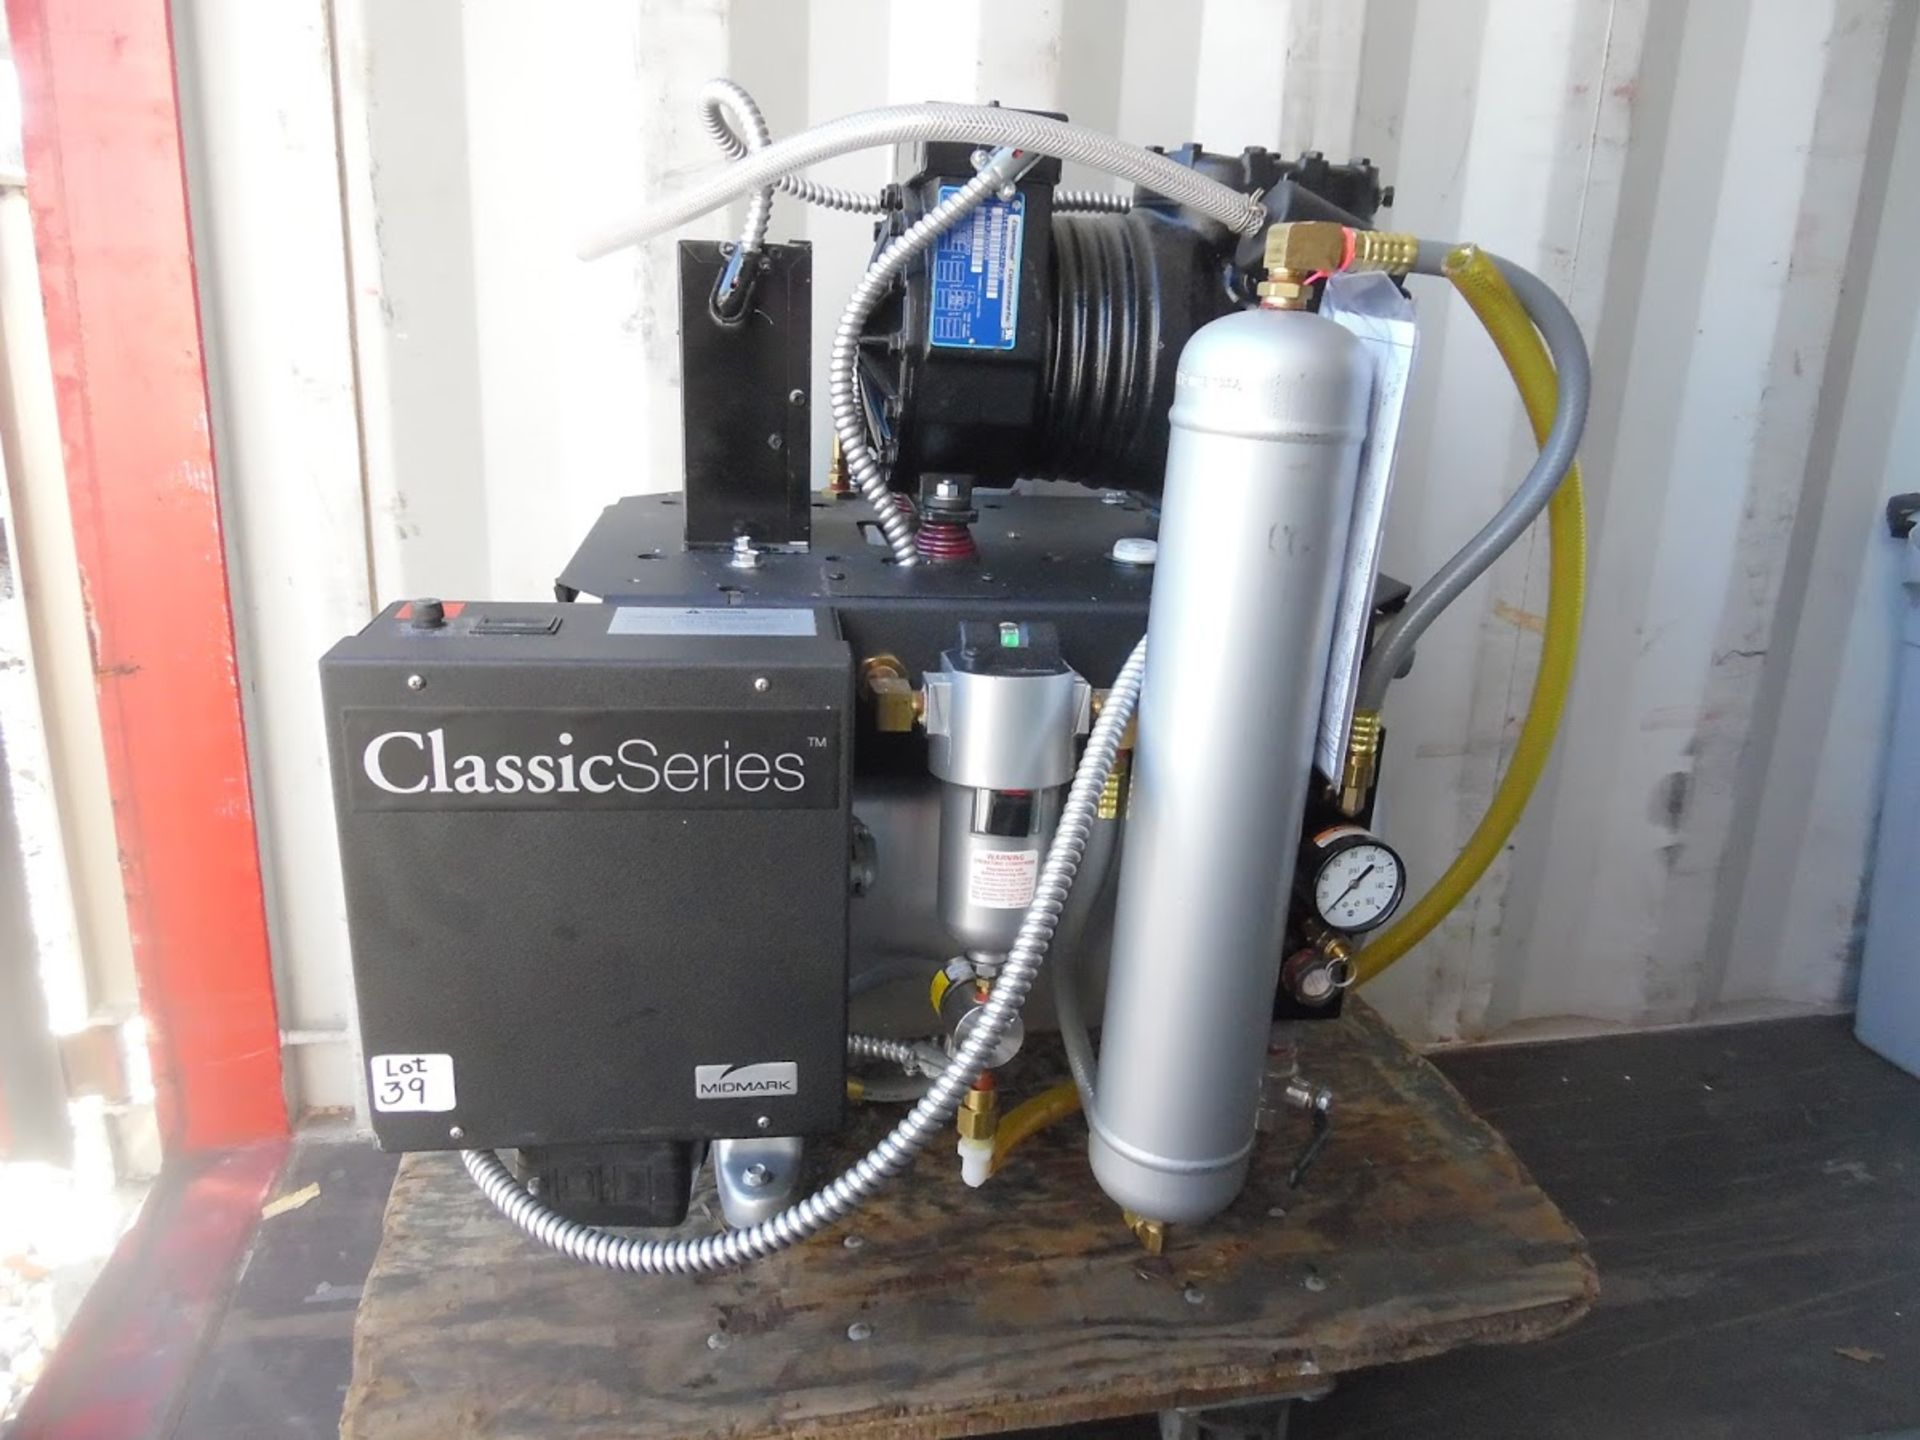 Midmark Classic Series Dental Air compressor. 208/230V single phase, 7.2 Amps, 1 HP, Only 27.6 Hours